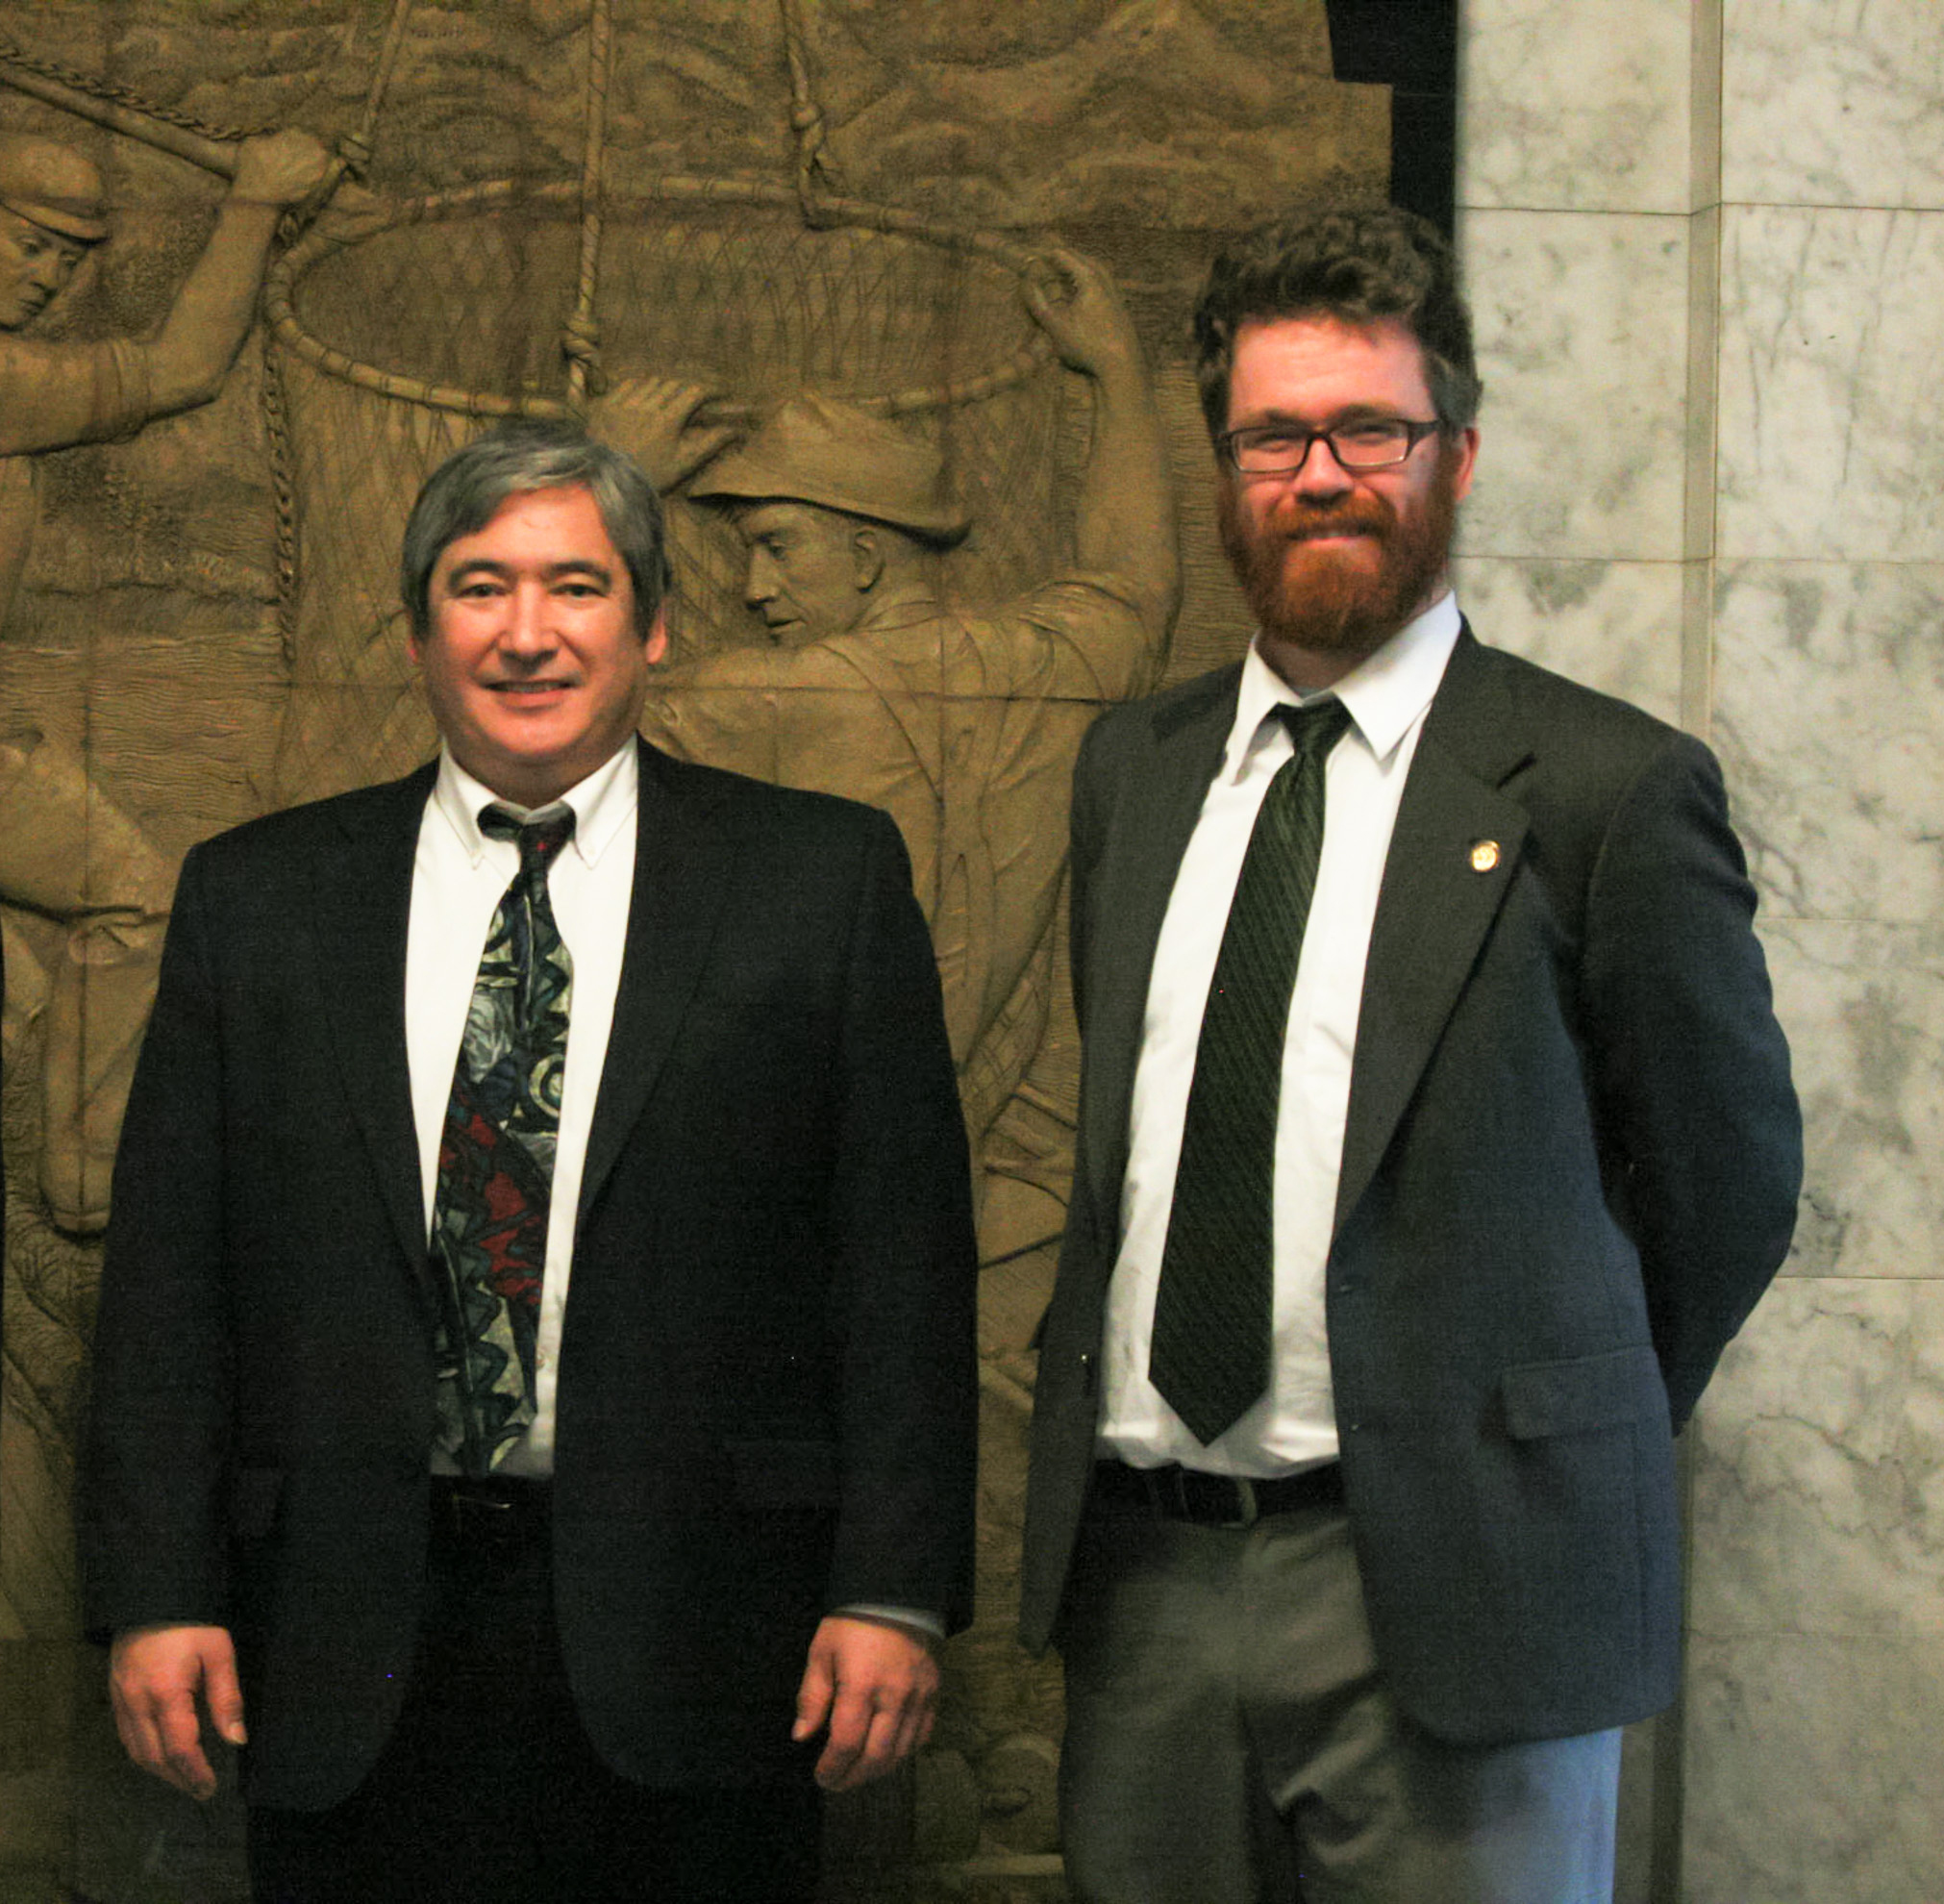 Rep. Sam Kito III (D-Juneau) and Rep. Justin Parish (D-Juneau) stand in the Capitol in February. They both say the Legislature accomplished some good in the legislative session, but has more work to do. (Photo courtesy office of Rep. Sam Kito)